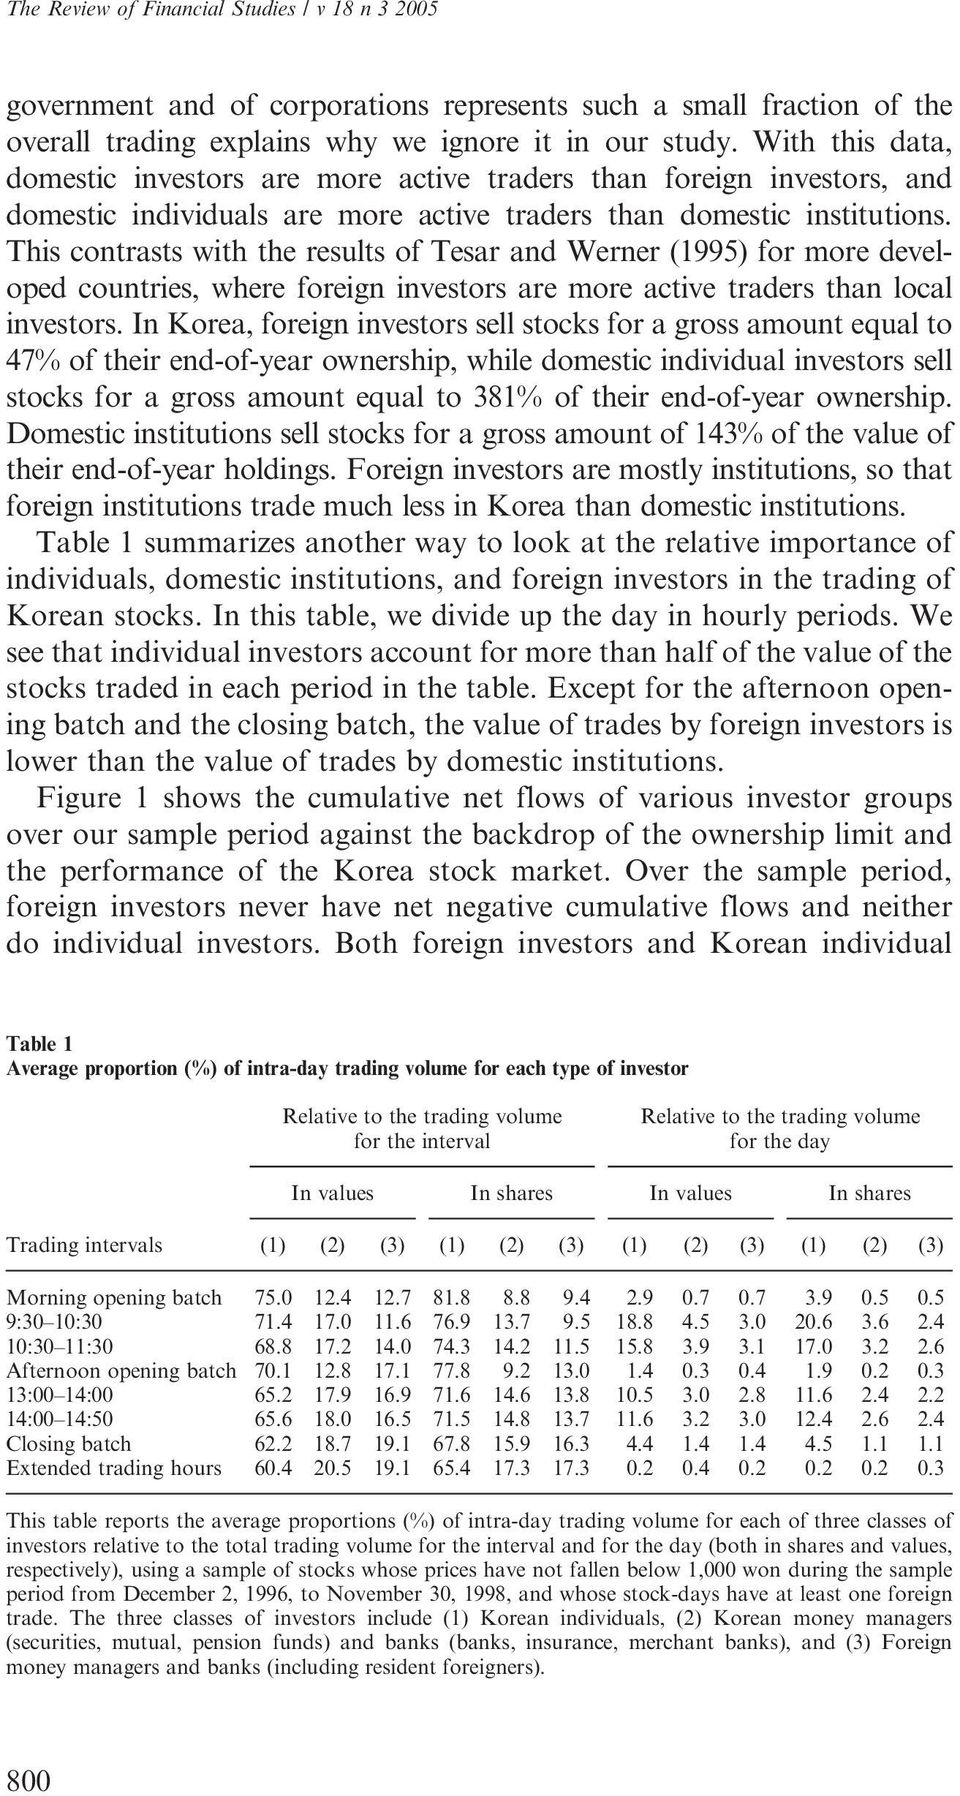 This contrasts with the results of Tesar and Werner (1995) for more developed countries, where foreign investors are more active traders than local investors.